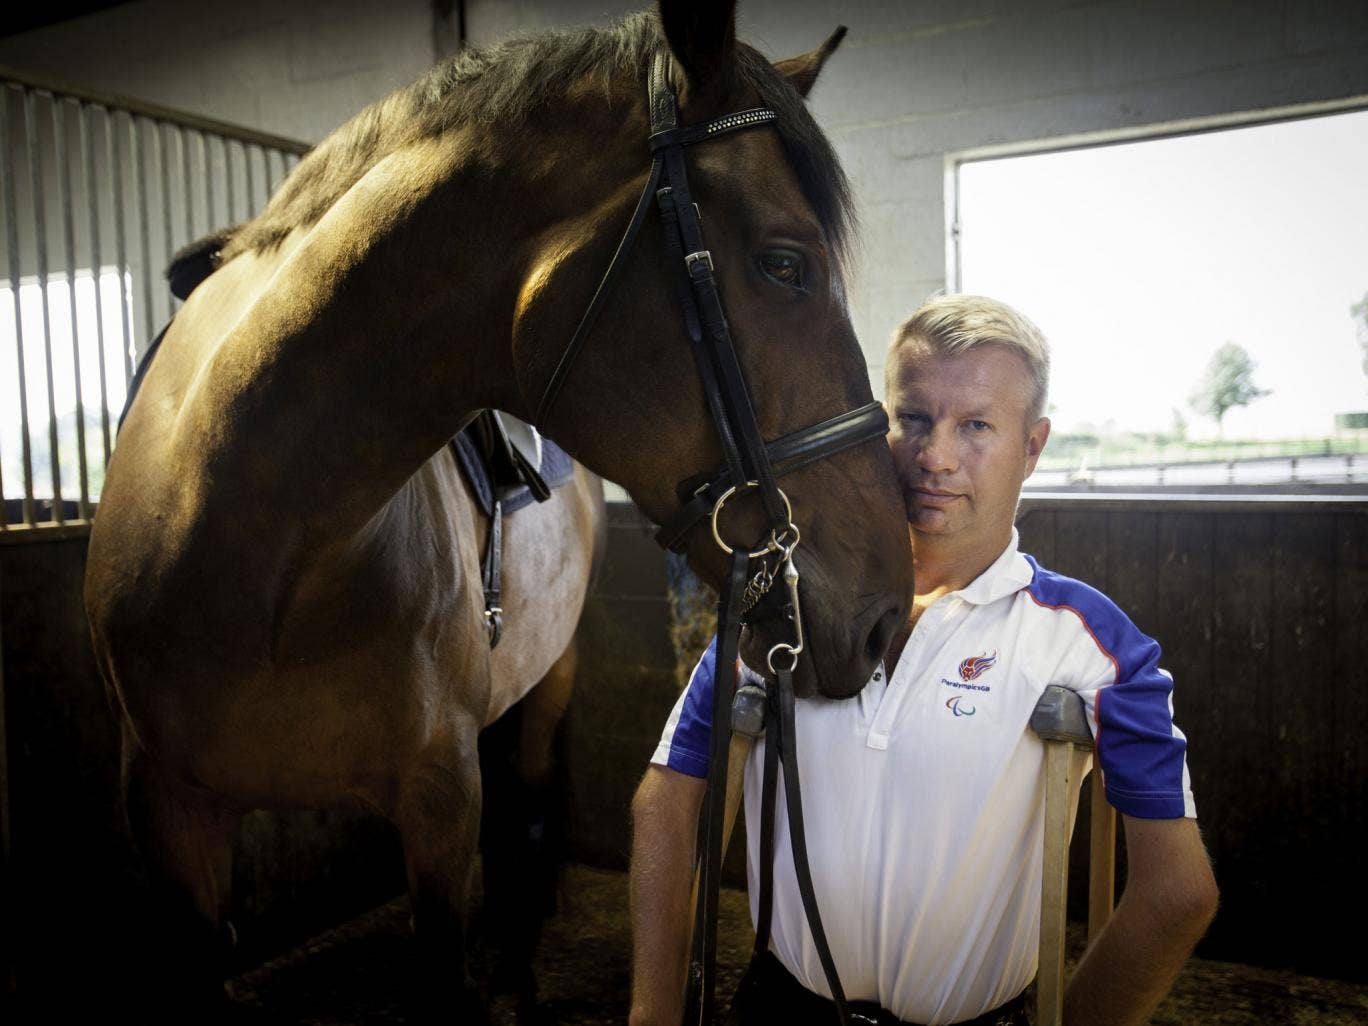 Paralympian dressage rider Lee Pearson, winner of 10 golds